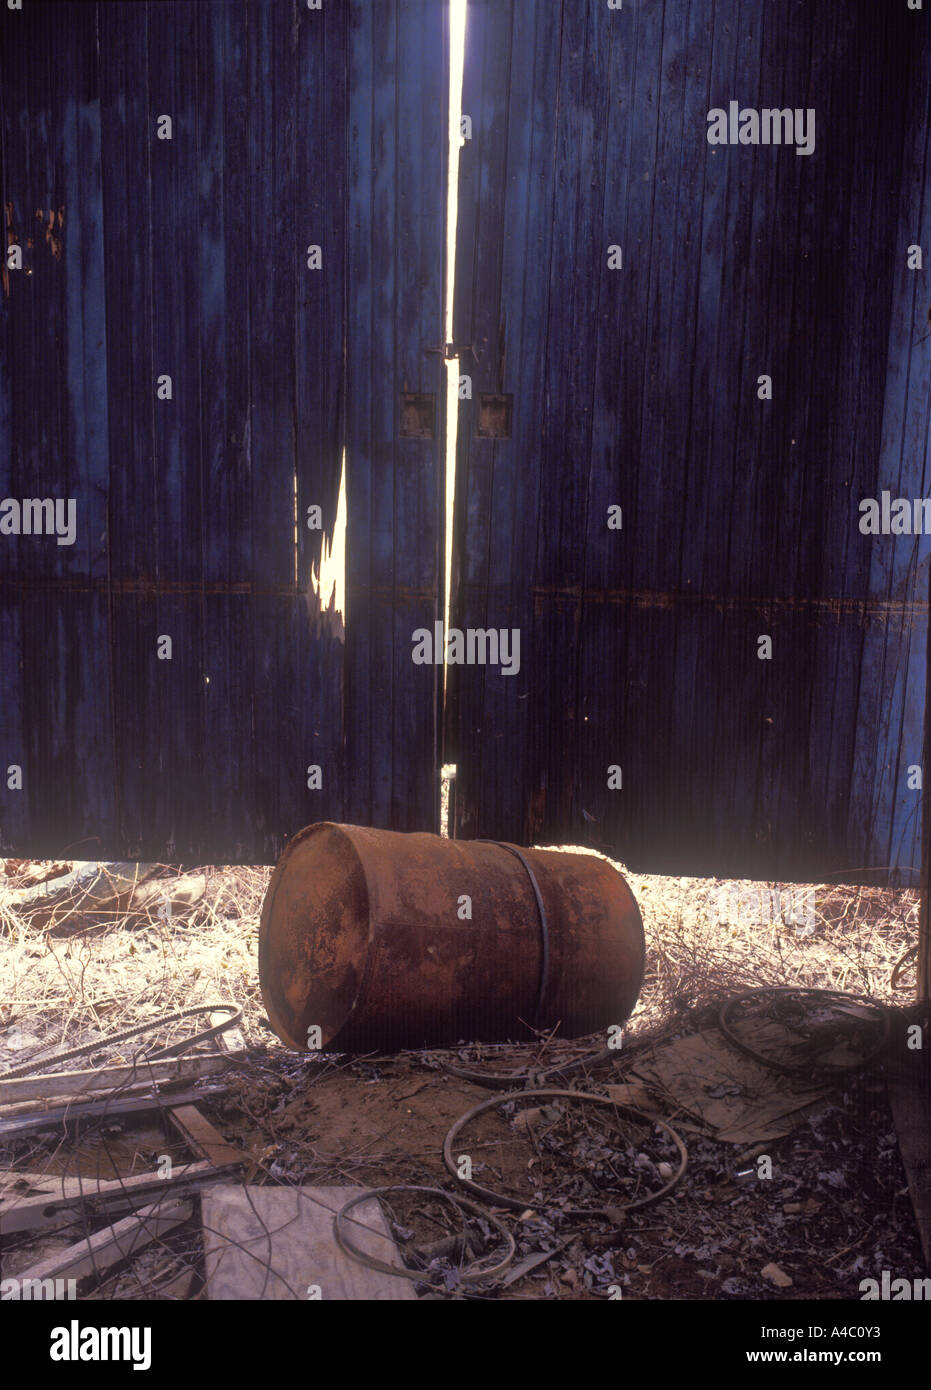 Old Rusty Oil Drum In Ramshackle Shed - Stock Image